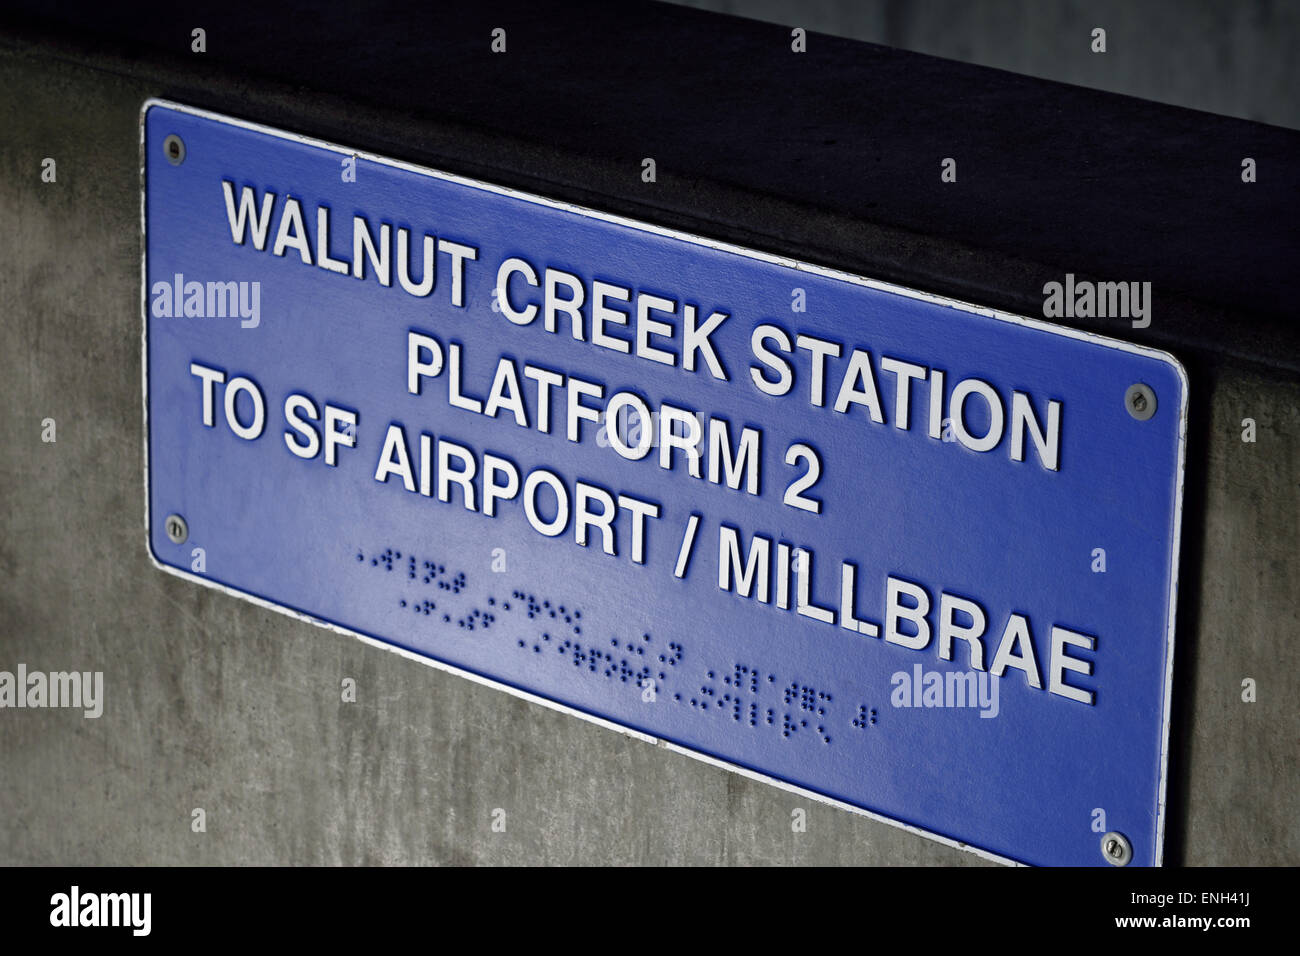 Metal plaque on Walnut Creek 'Bart' station with platform information duplicated in Braille for visually - Stock Image